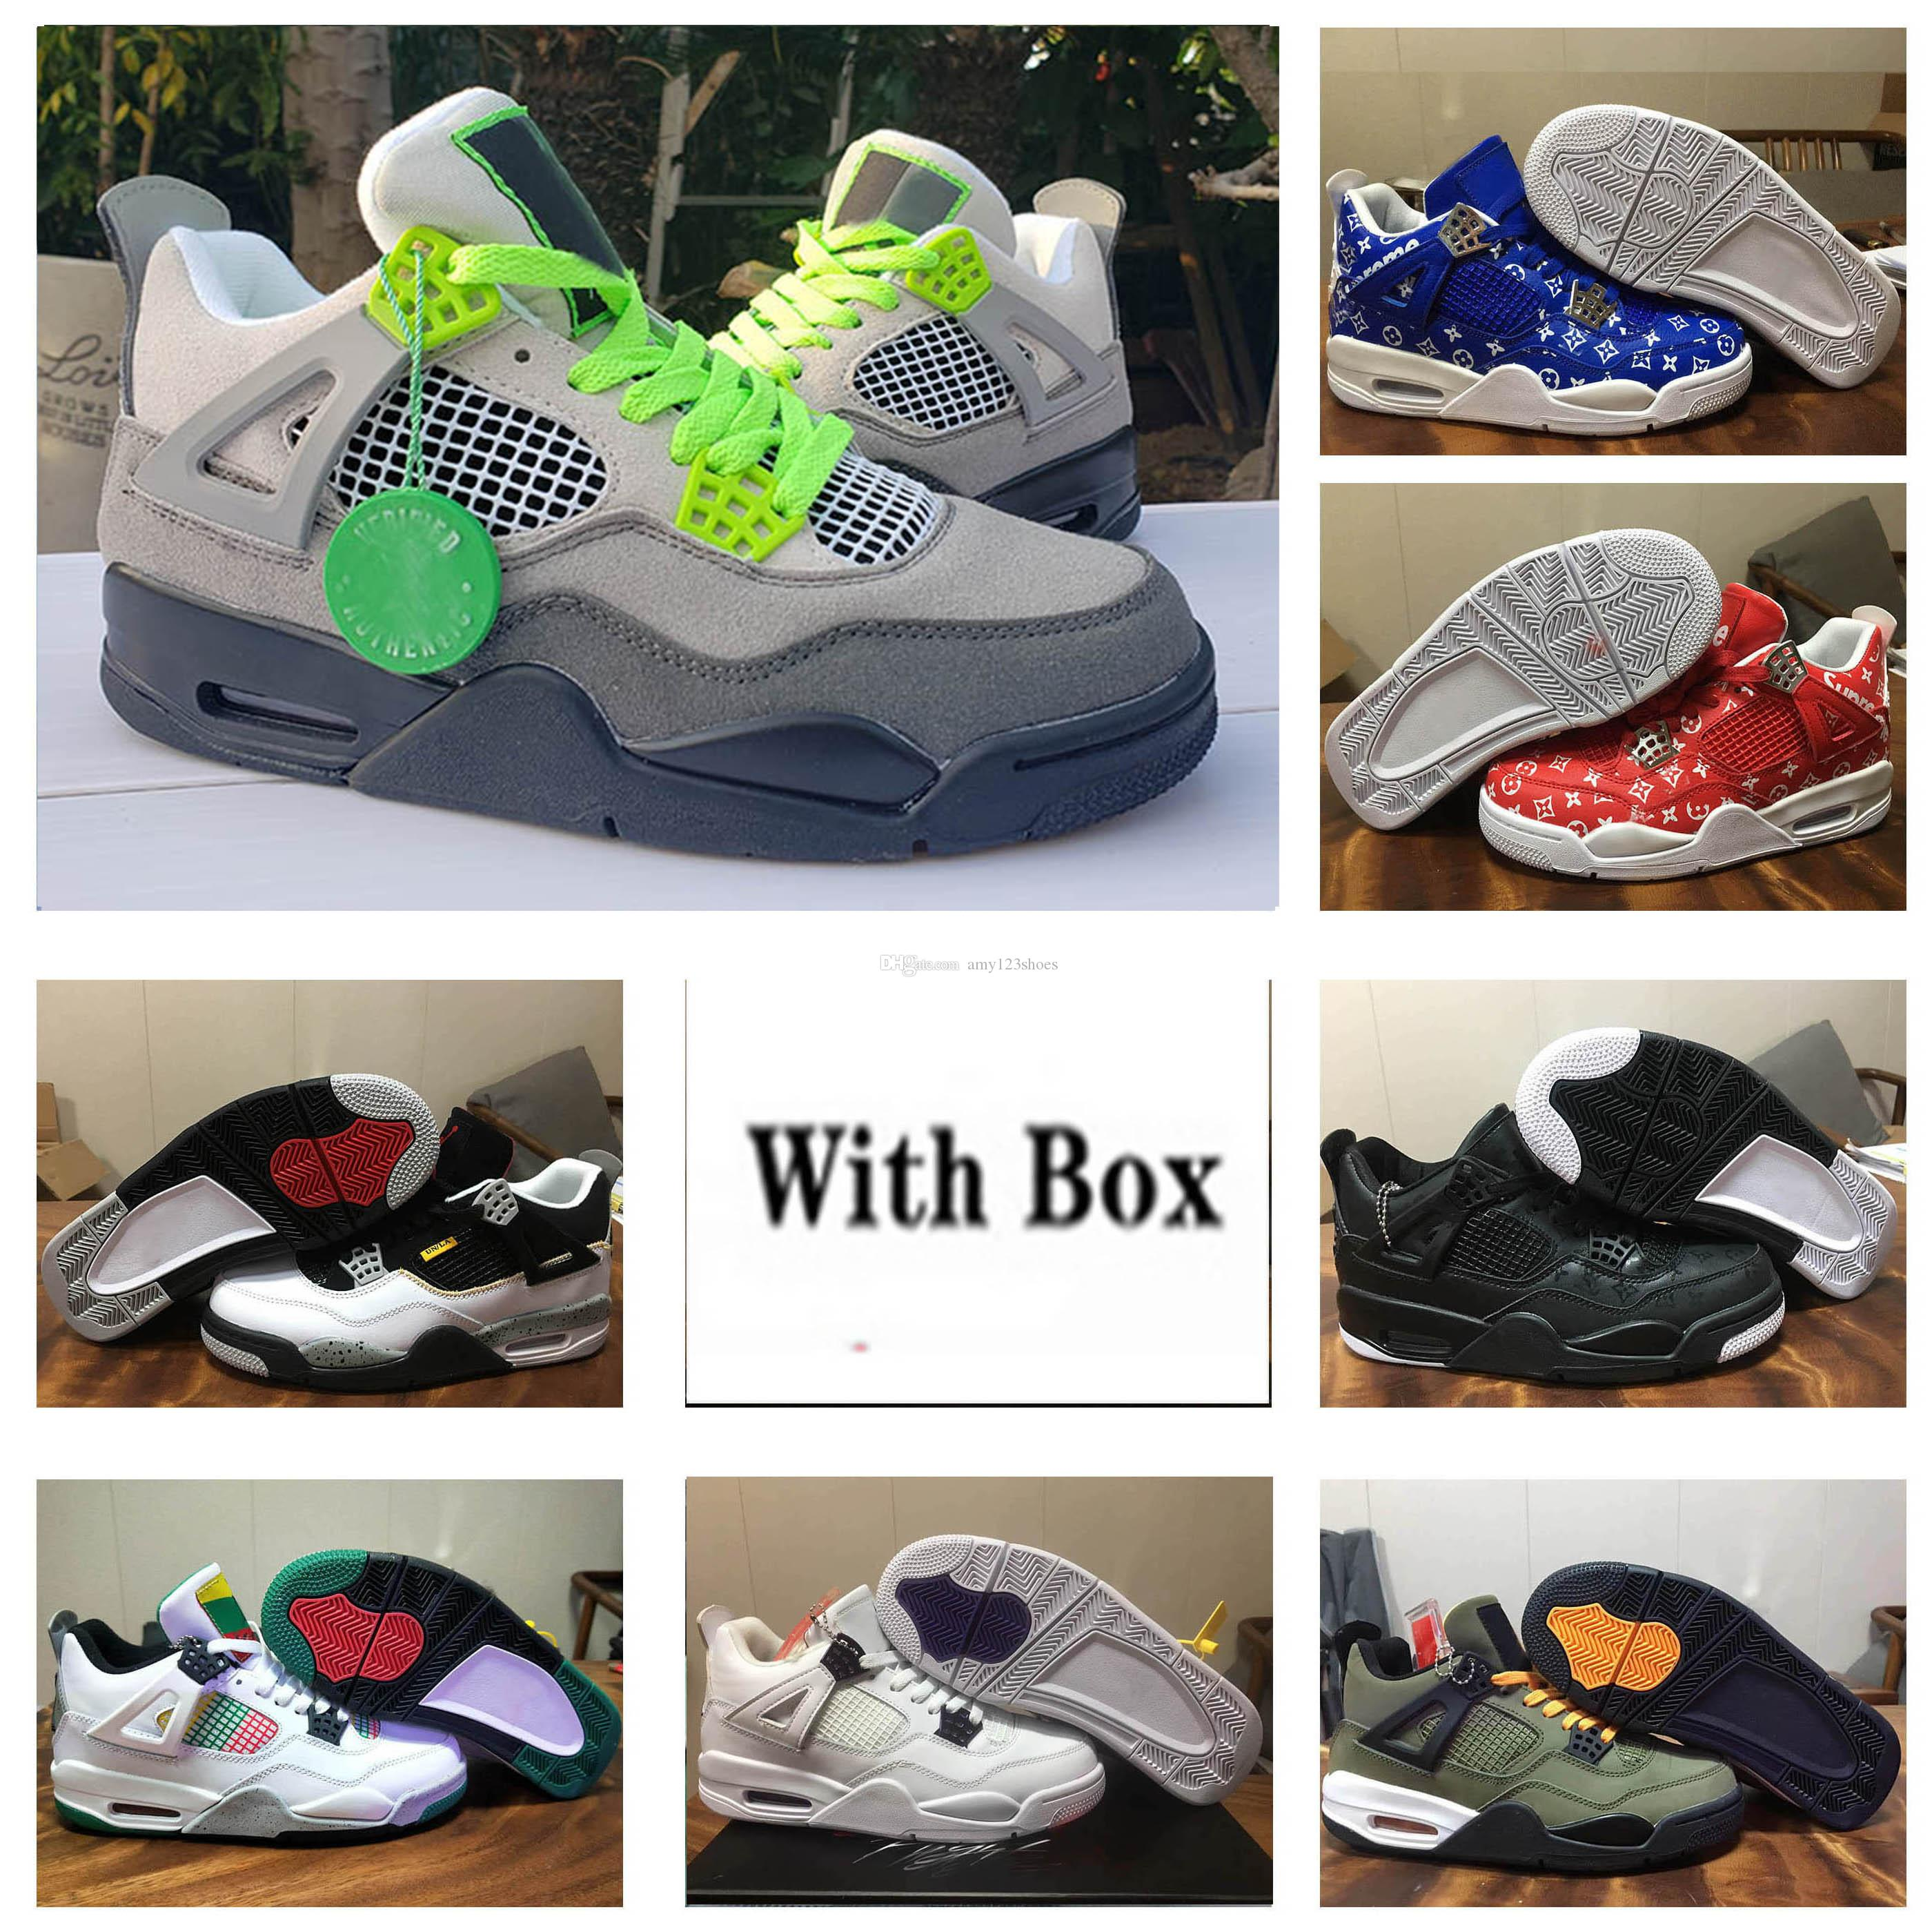 4 OG black cement 4 WMNS Do The Right Thing High Quality 4 WNTR Moral Blue Pine Green Black Cat Men Basket Shoes 4s Neon Sneakers.